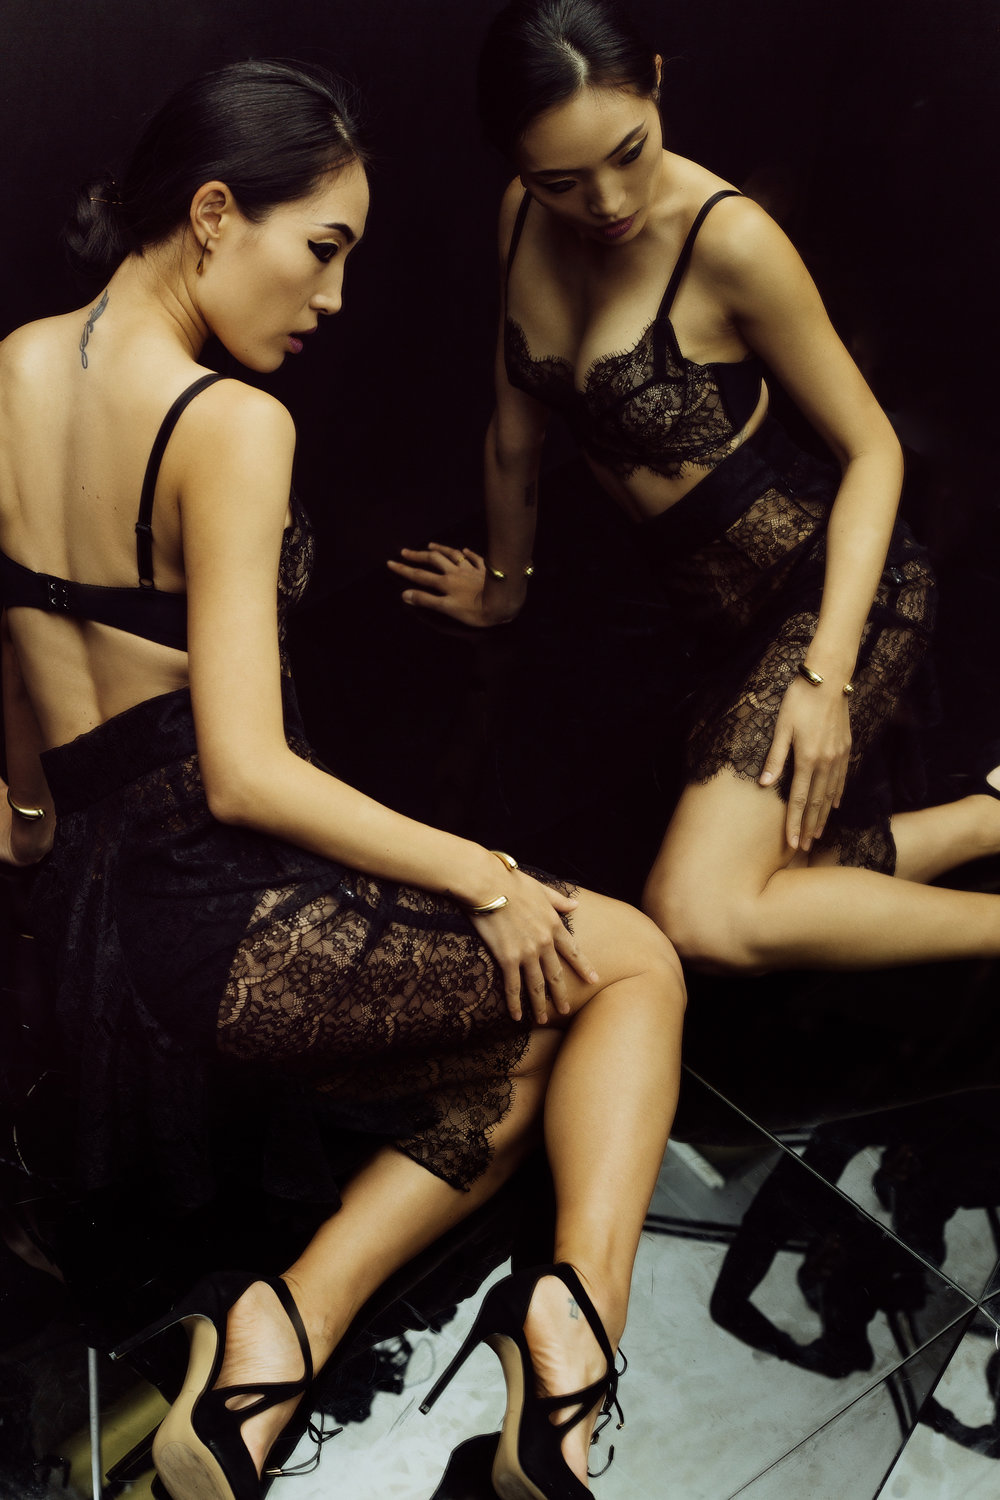 gia_goodrich_beauty_fashion_photographer_janes_vanity_lingerie_winter_look_book_11 copy.jpg